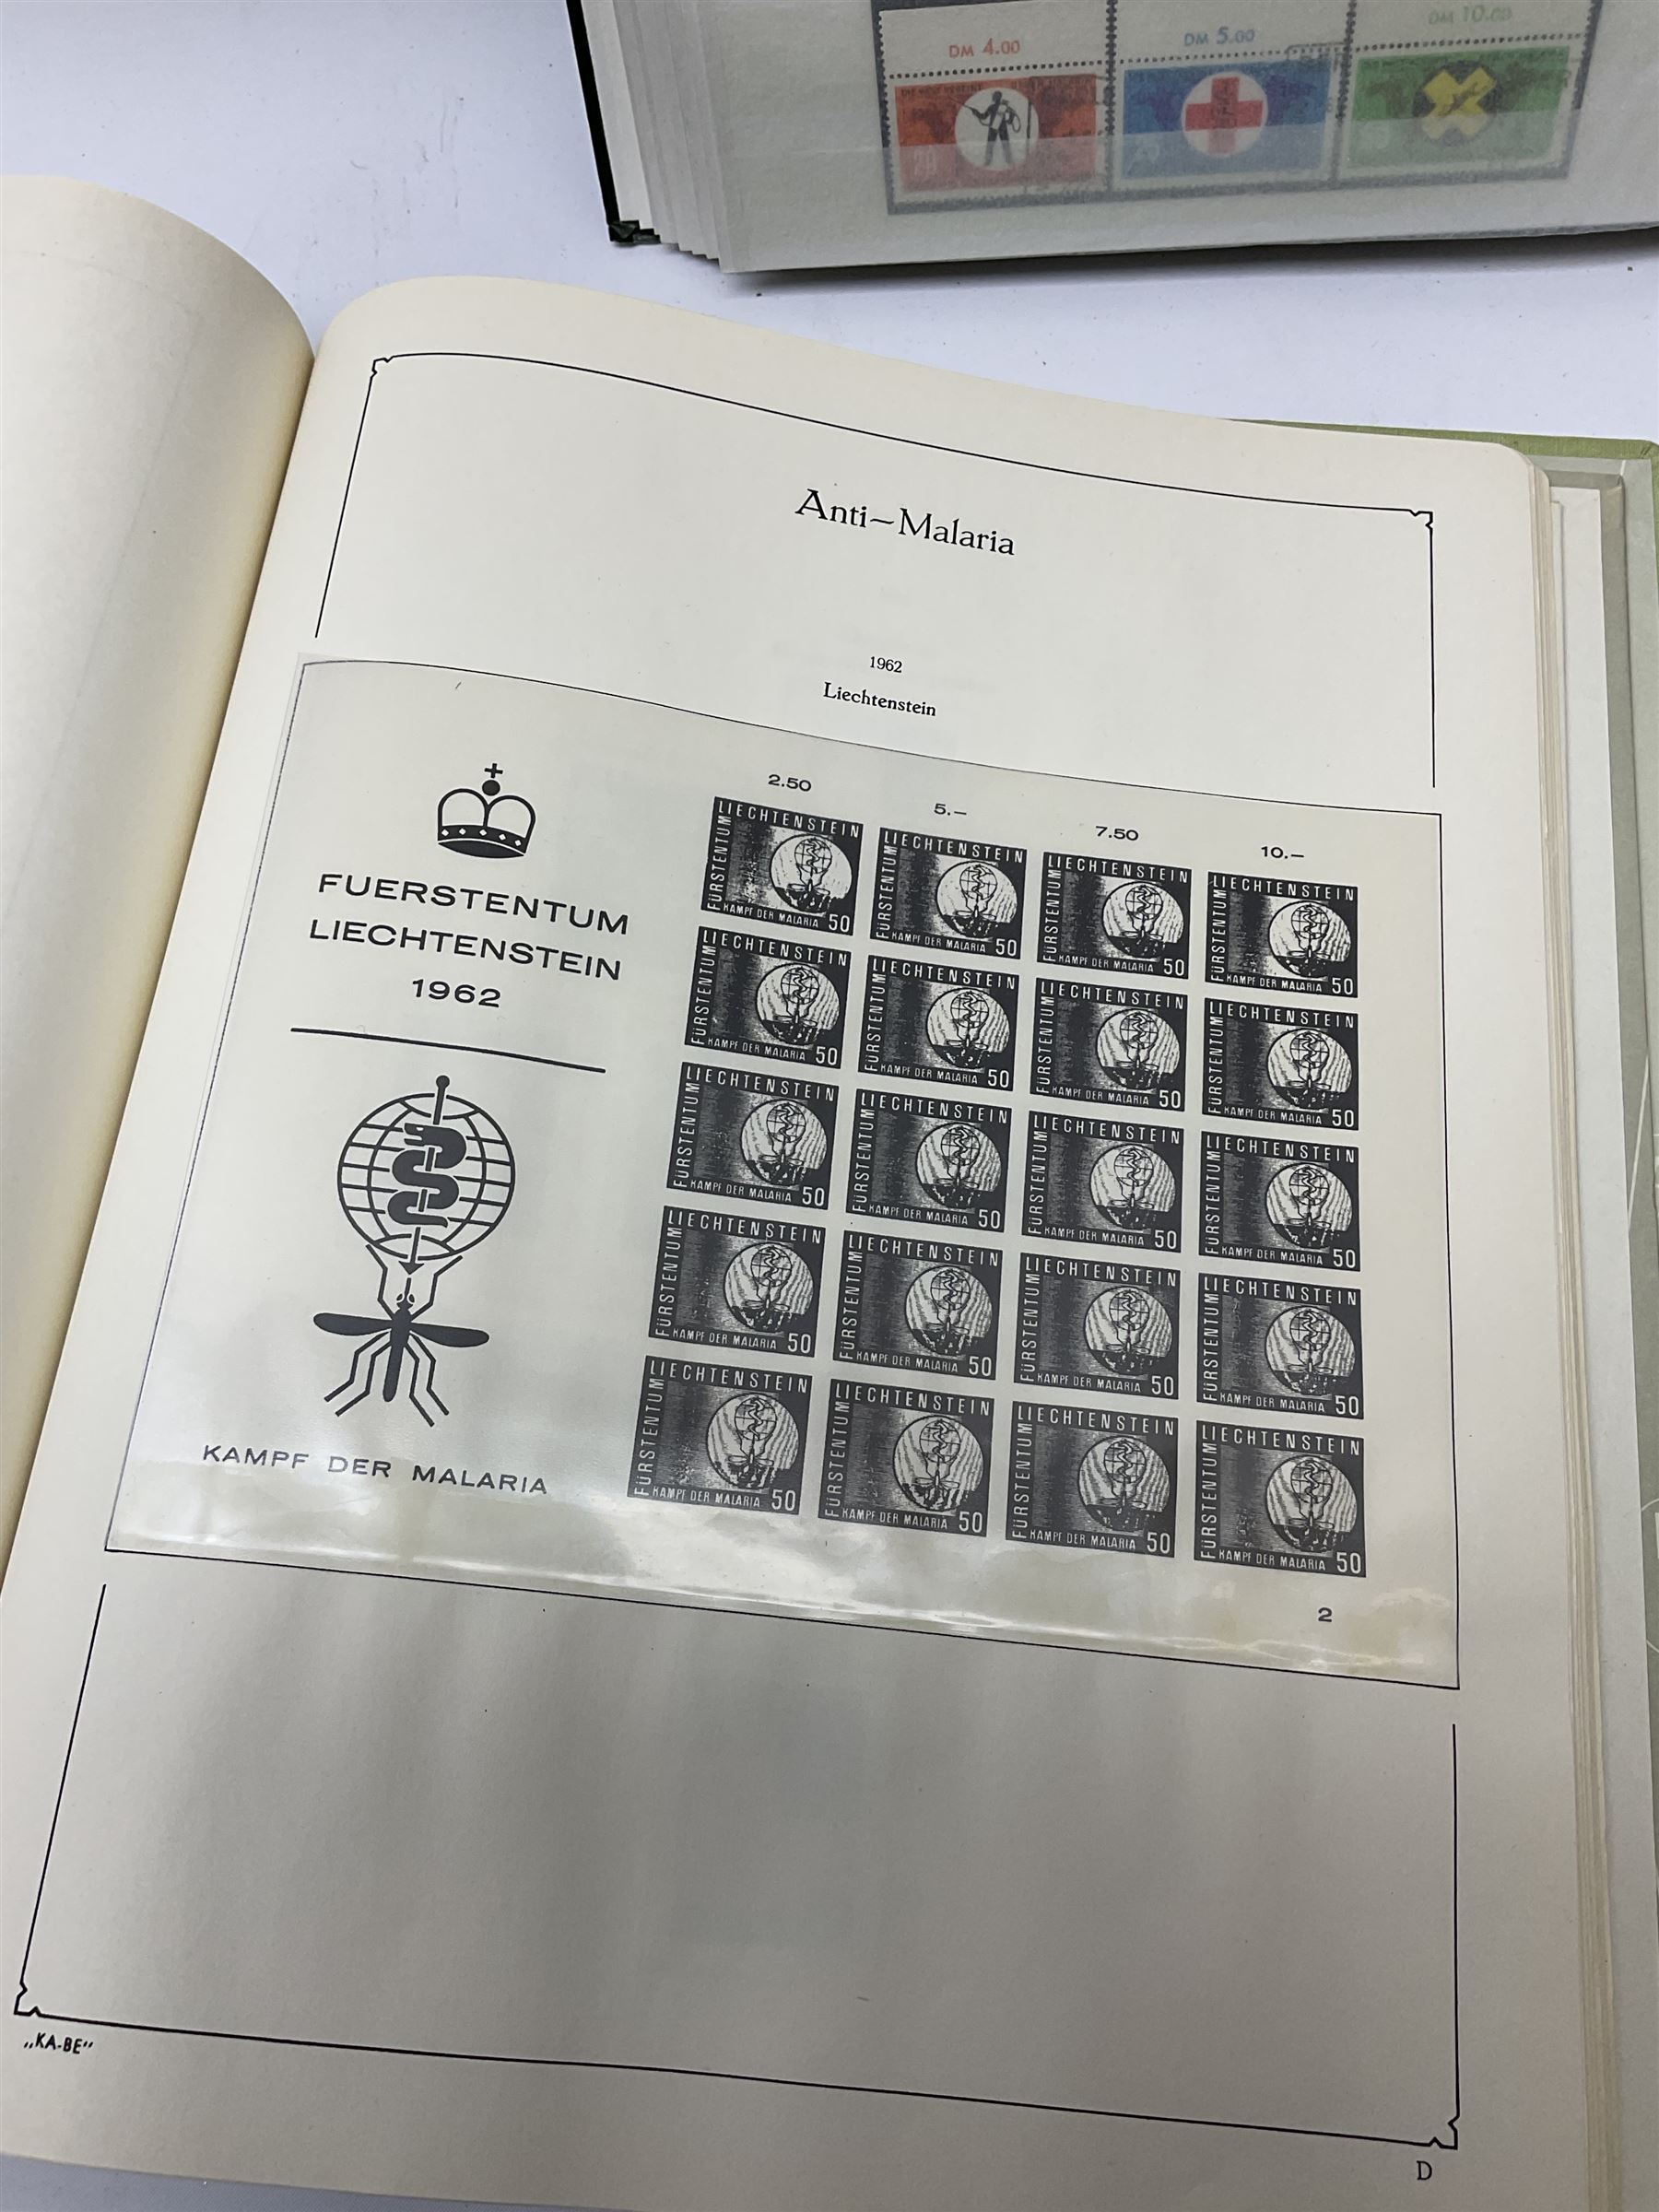 Stamps mostly relating to 'The World Against Malaria' from various Countries including Angola - Image 12 of 17